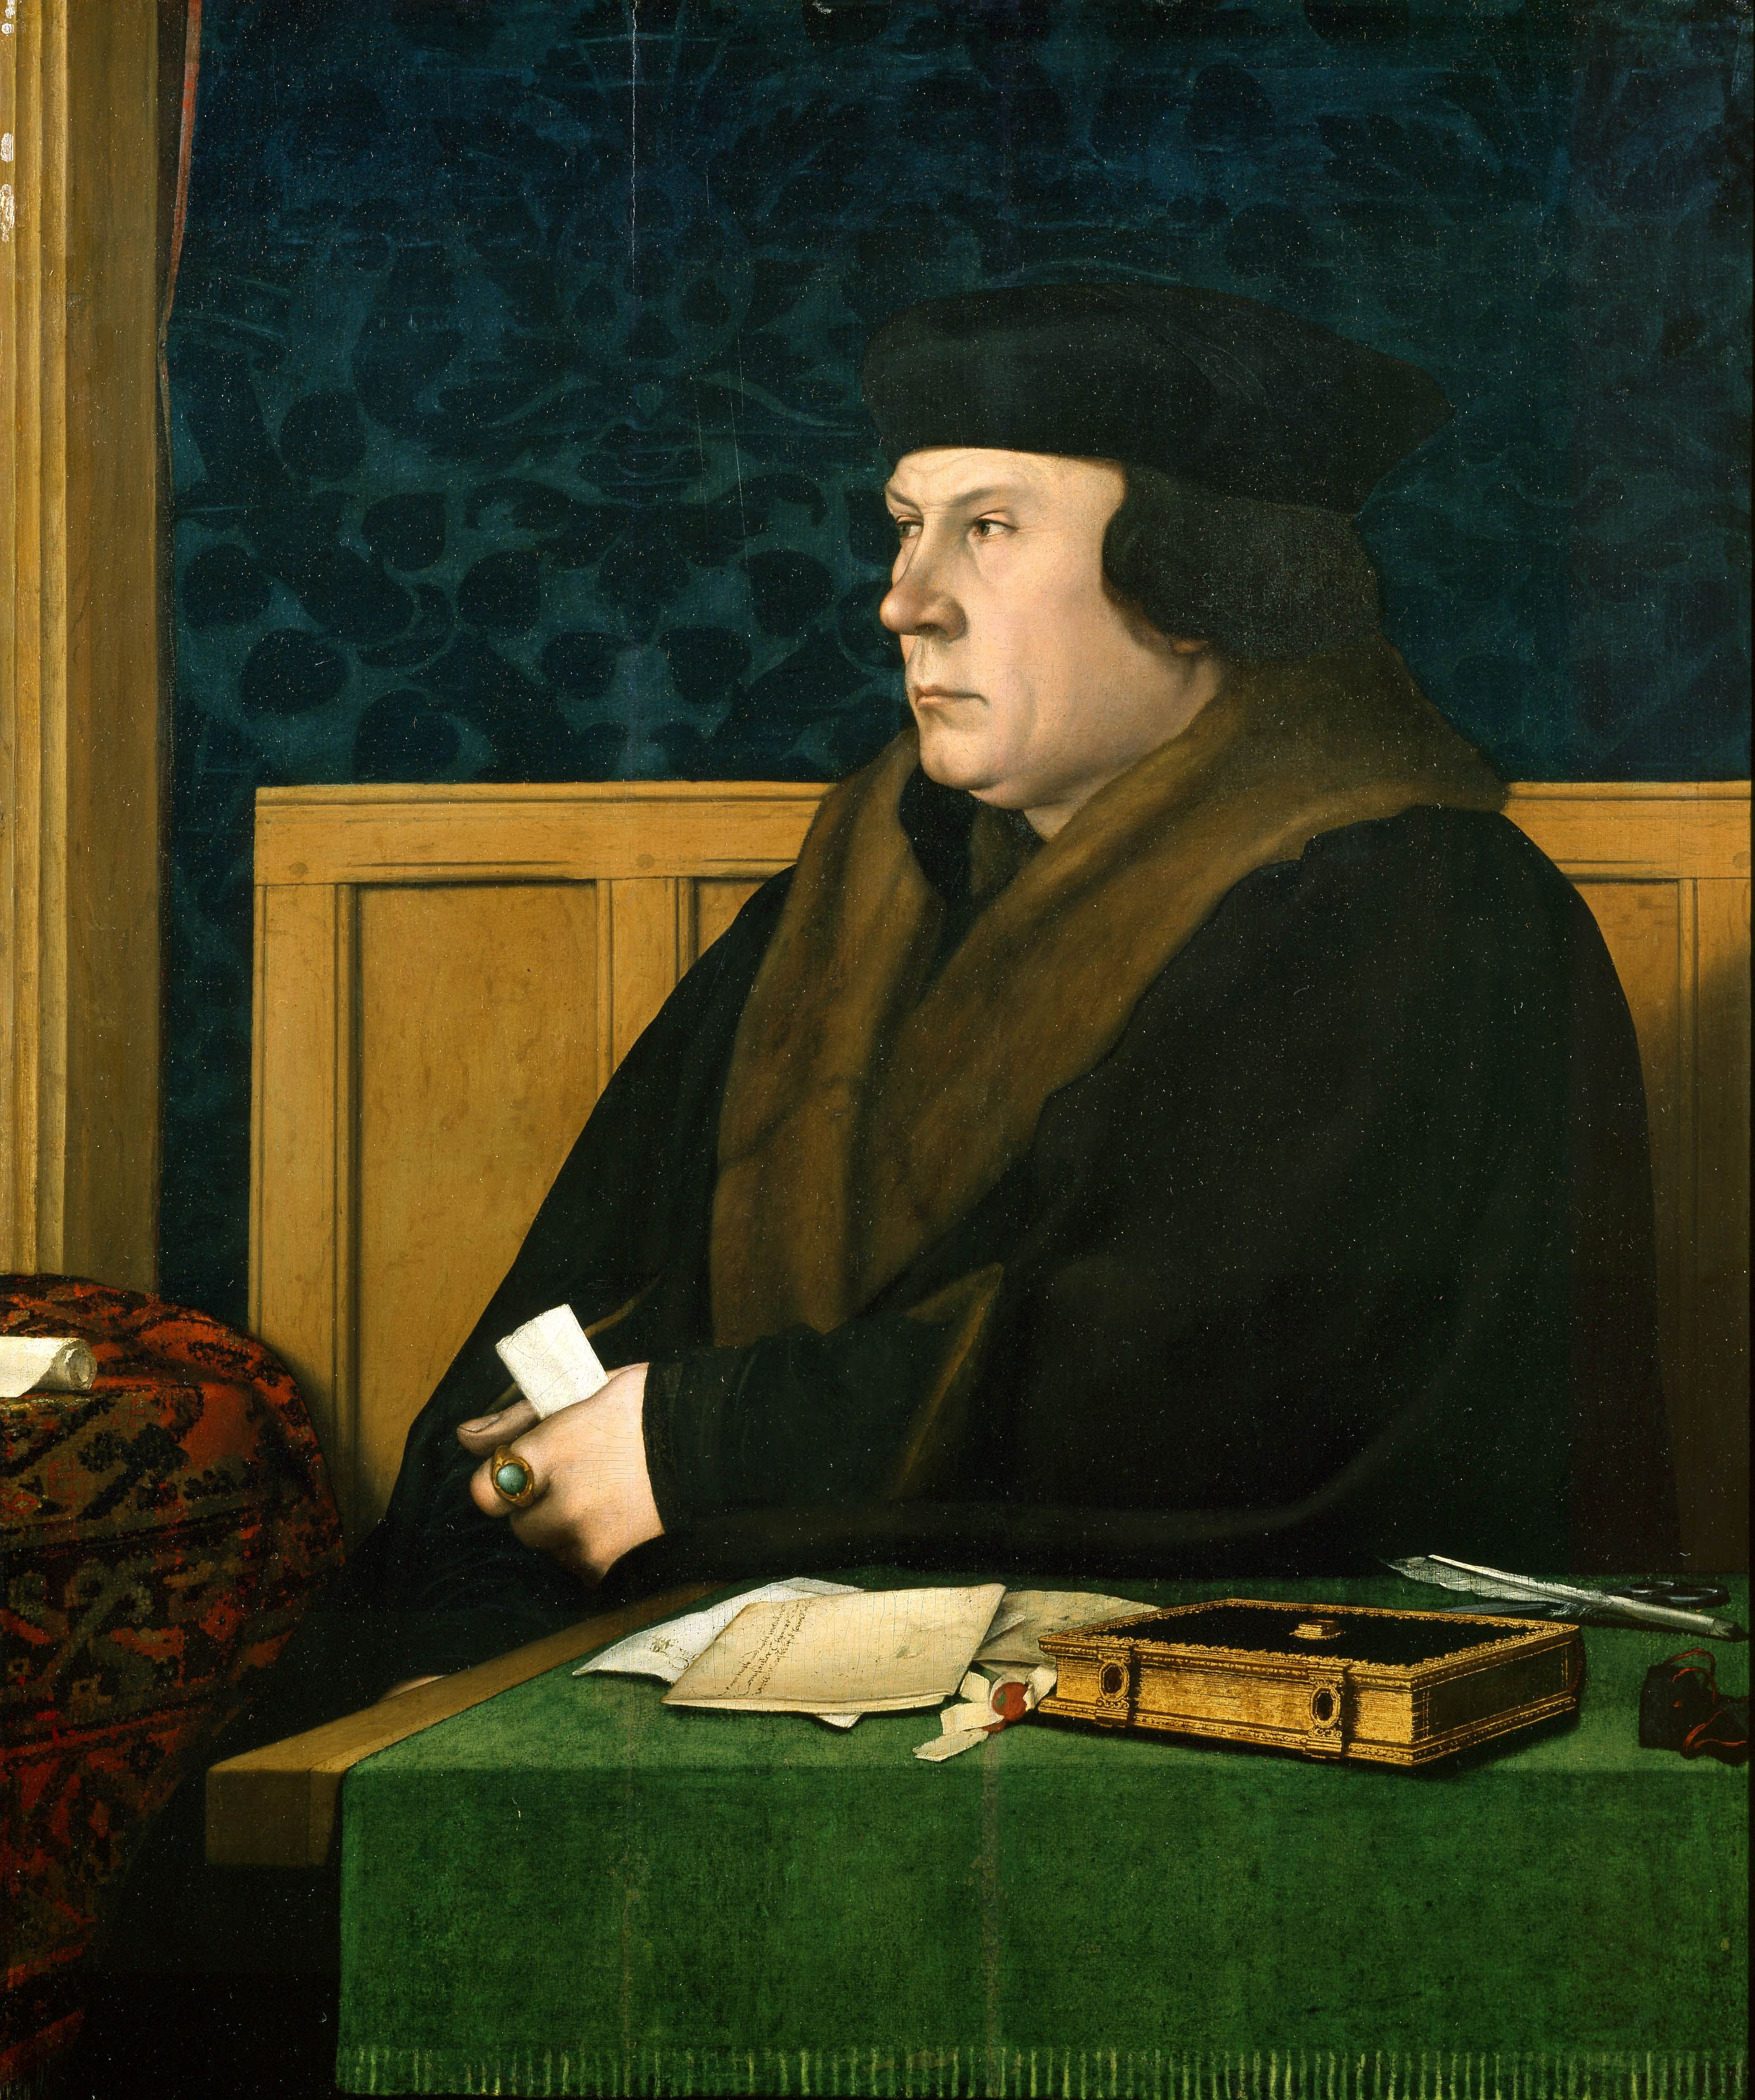 A portrait of Thomas Cromwell by Hans Holbein